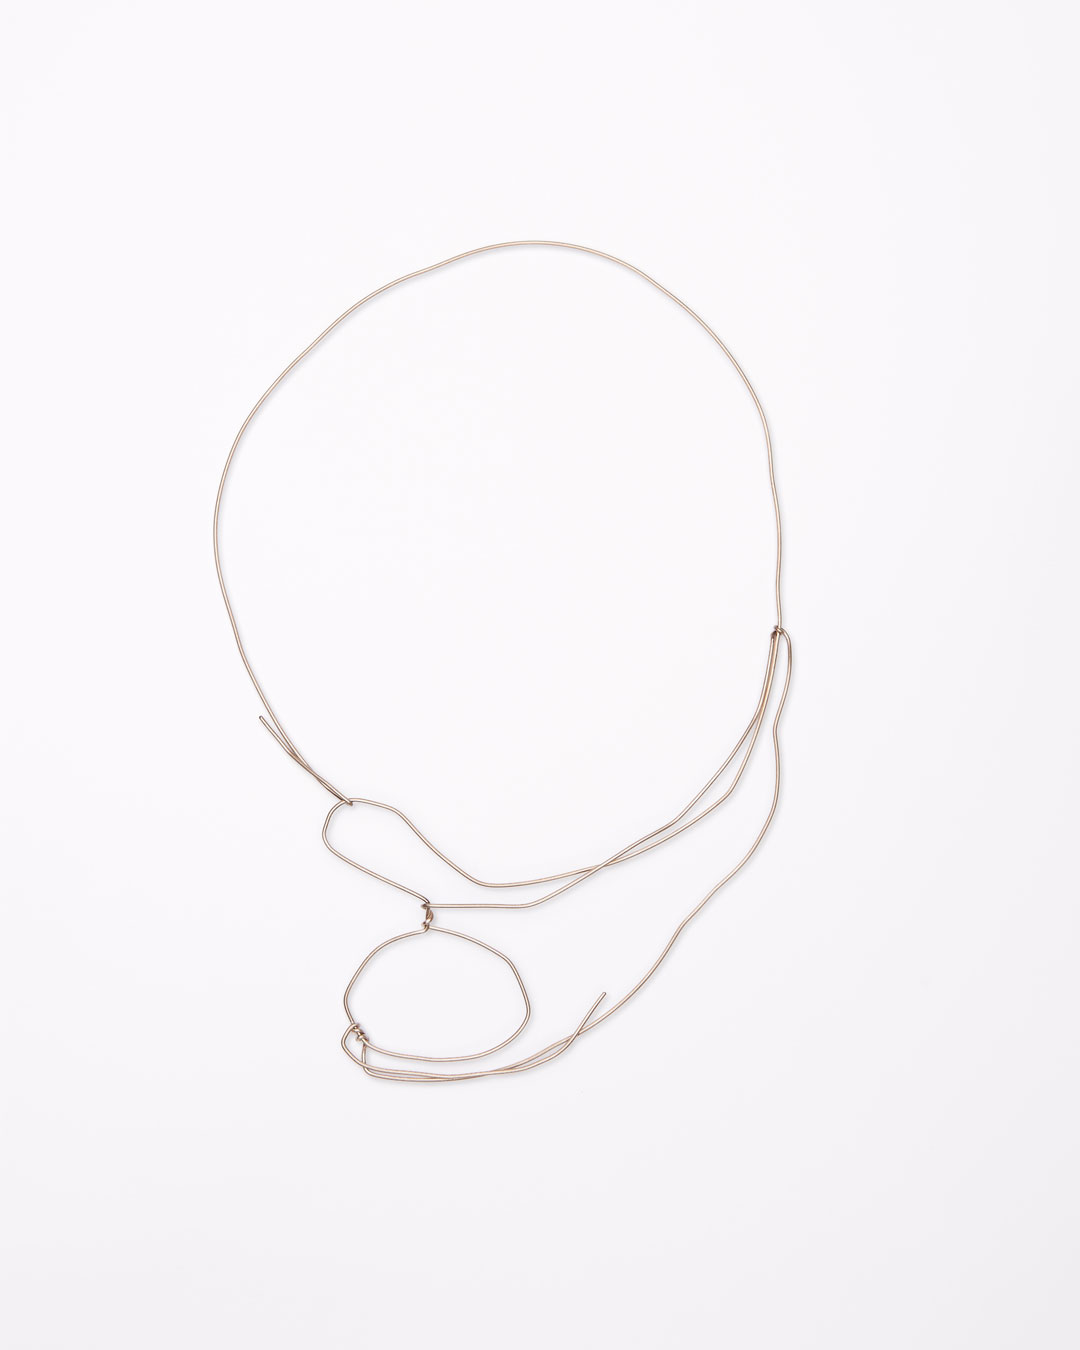 Iris Bodemer, Notizen (Notes), 2016, necklace; gold 585/000, 240 x 170 x 10 mm, €4000